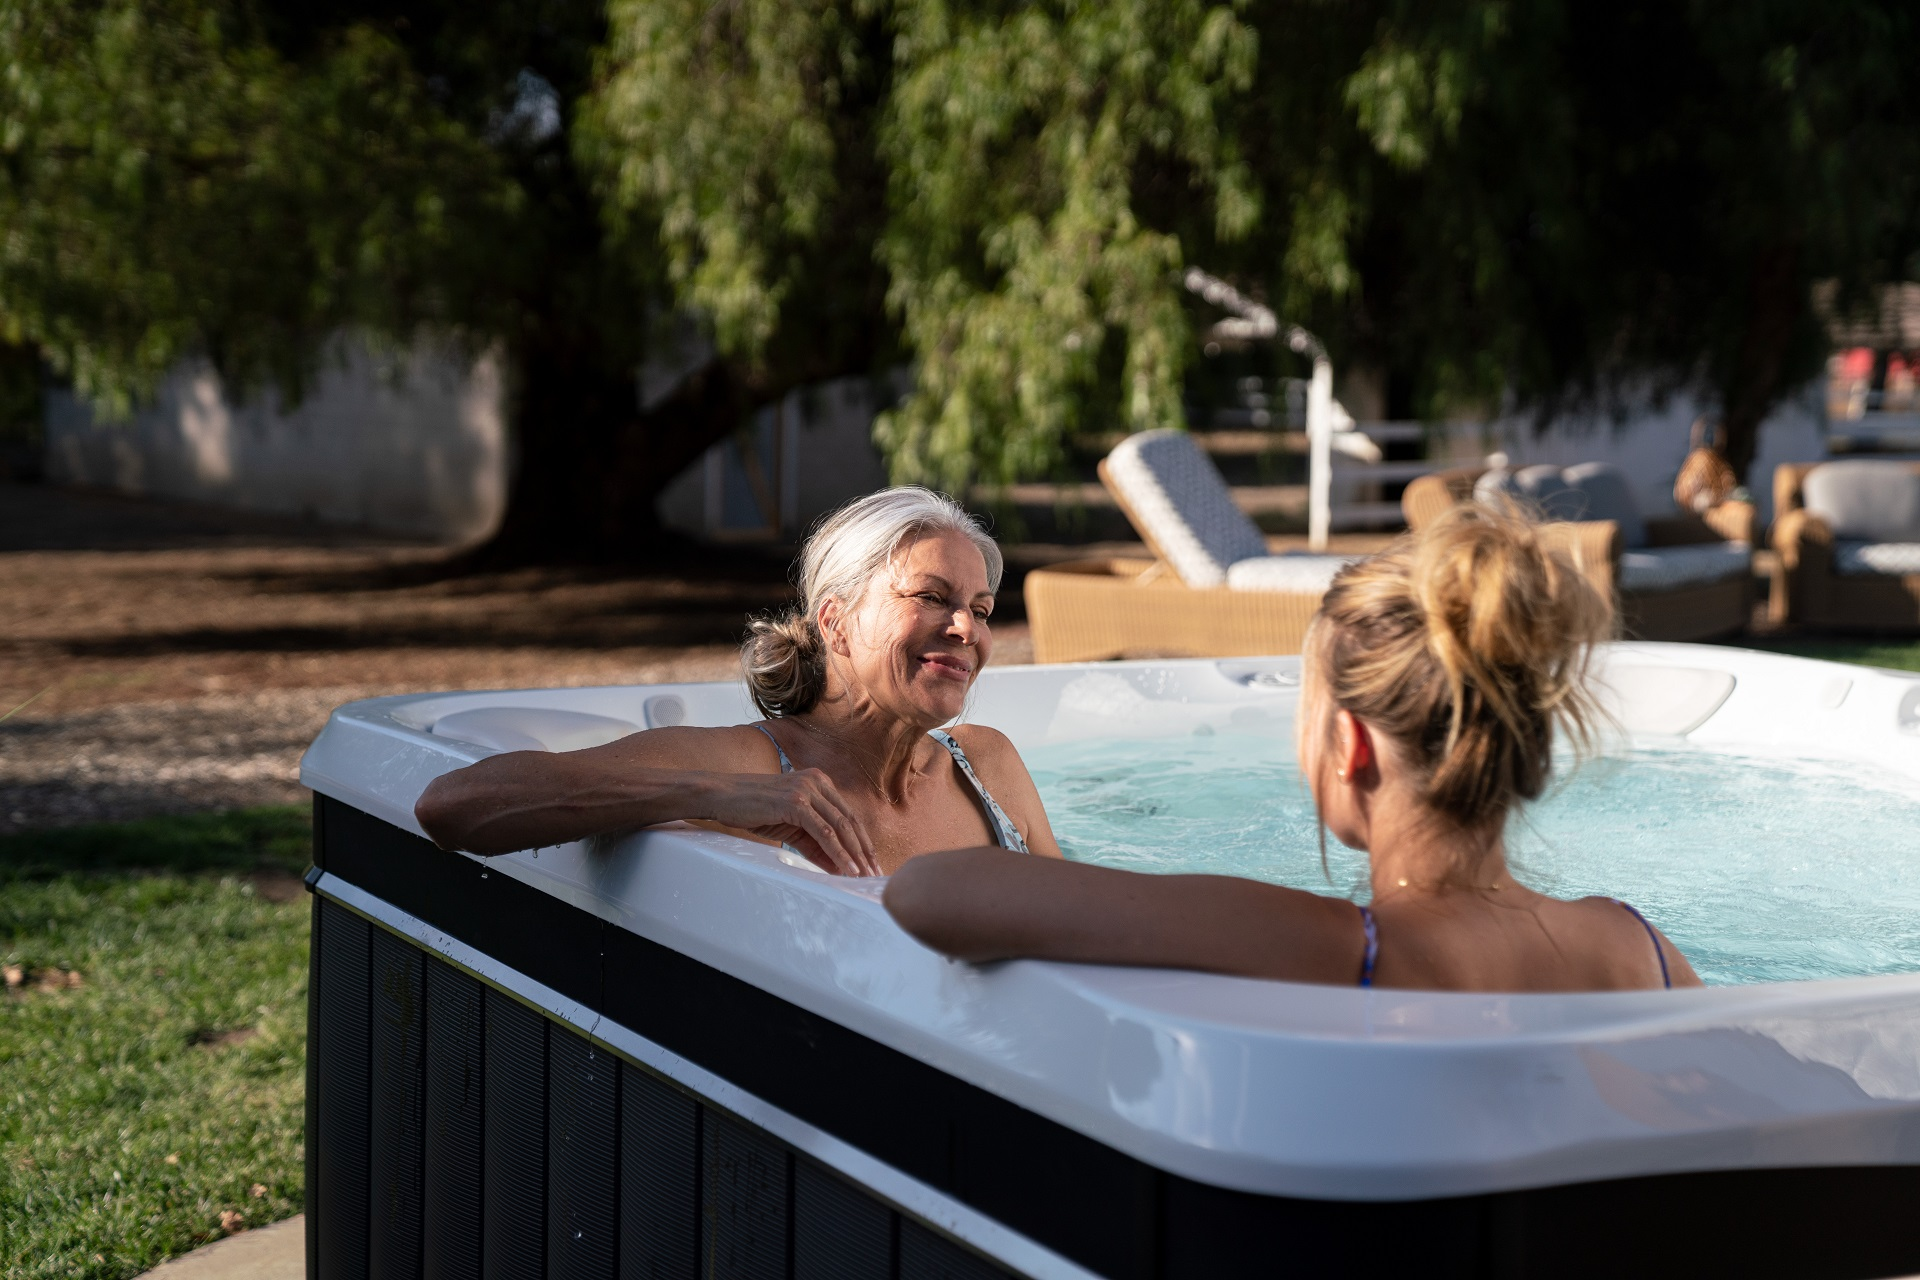 7 Ways a Hot Tub Can Change Your Life